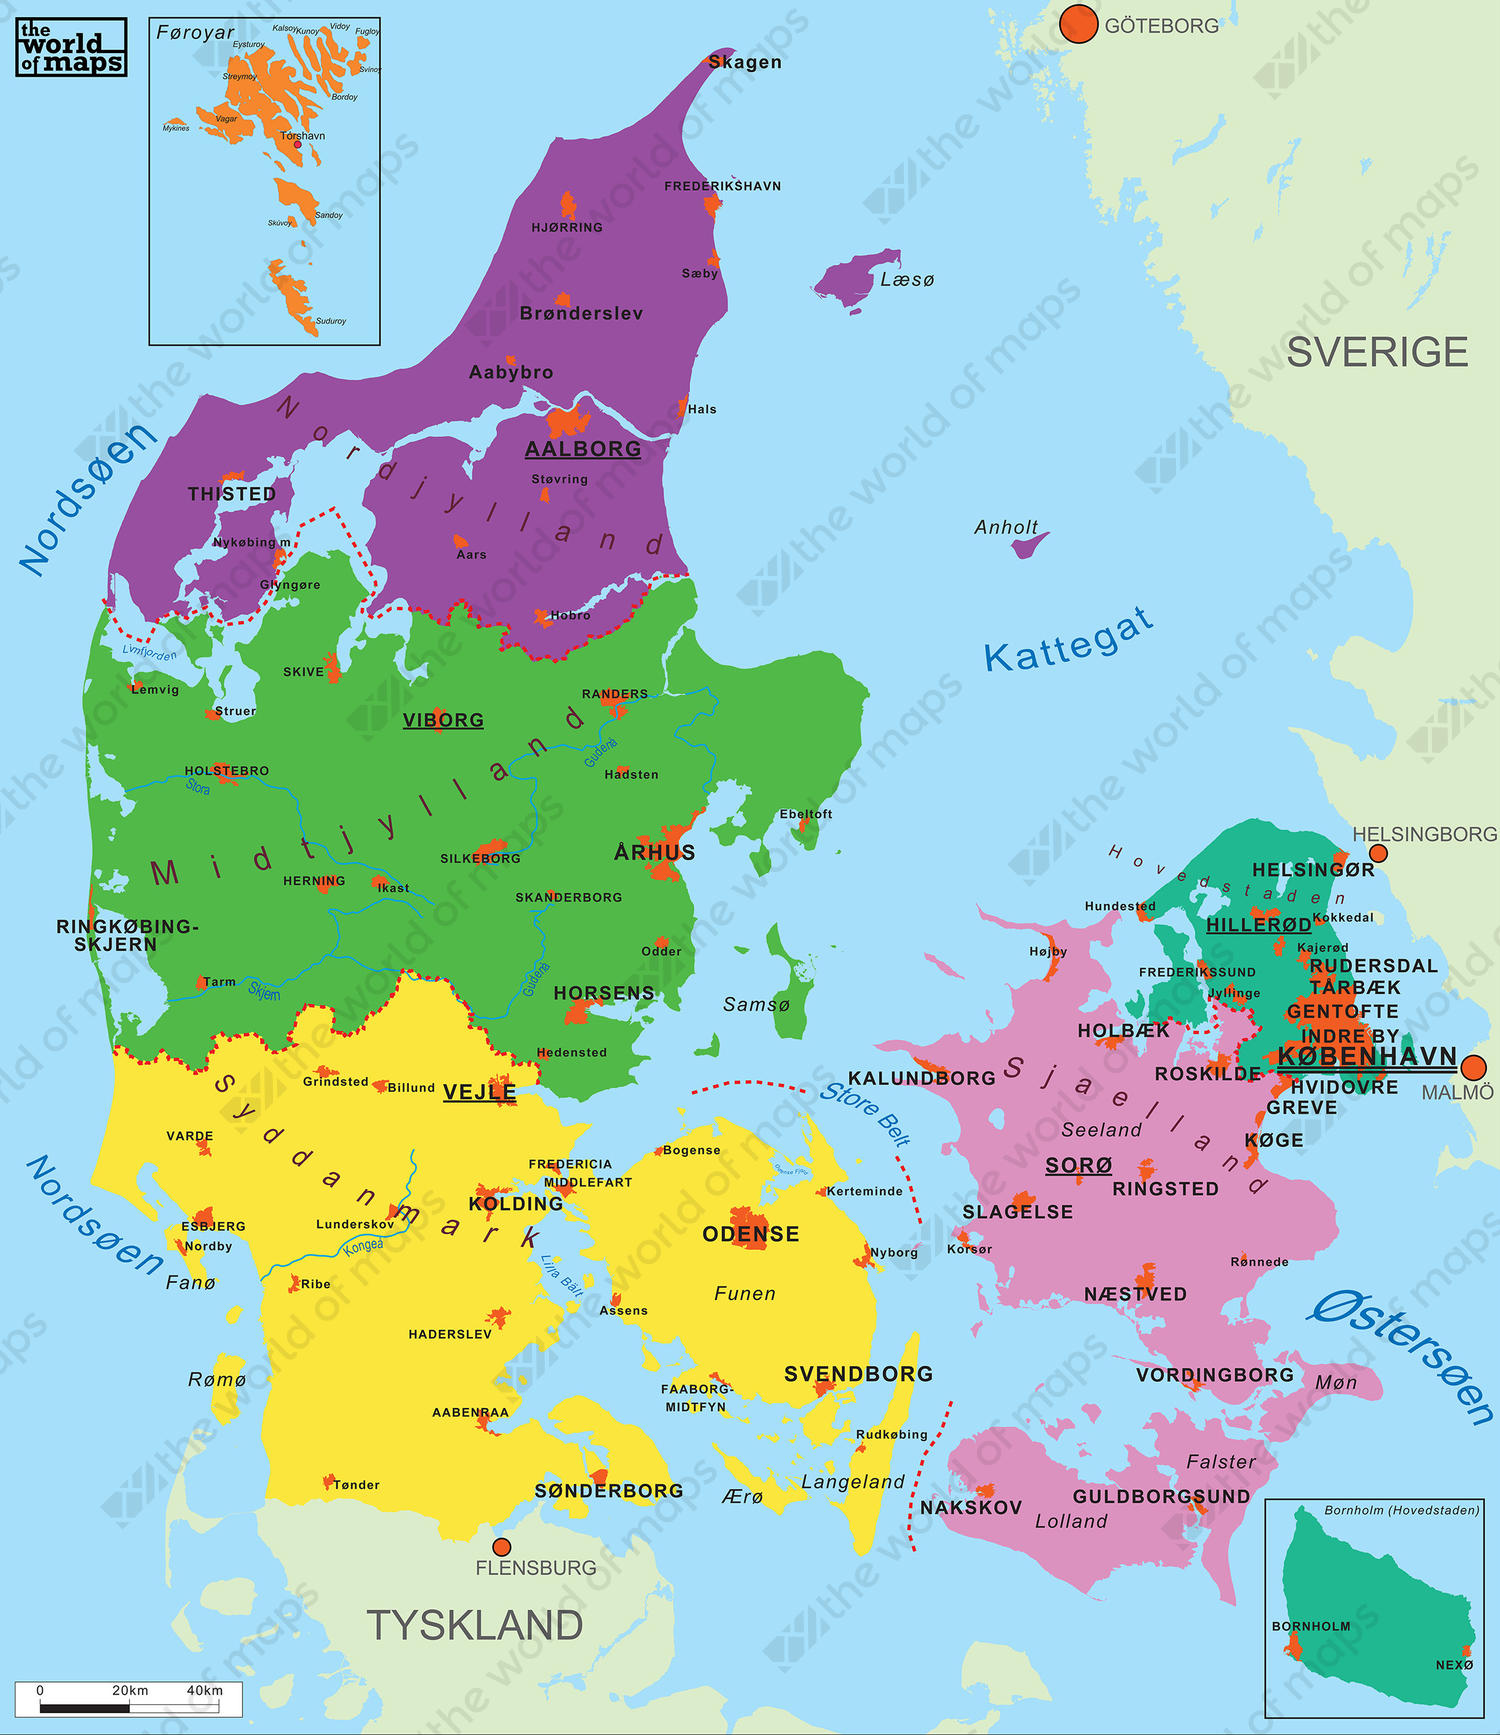 Simple Digital Denmark Map 68 The World of Mapscom